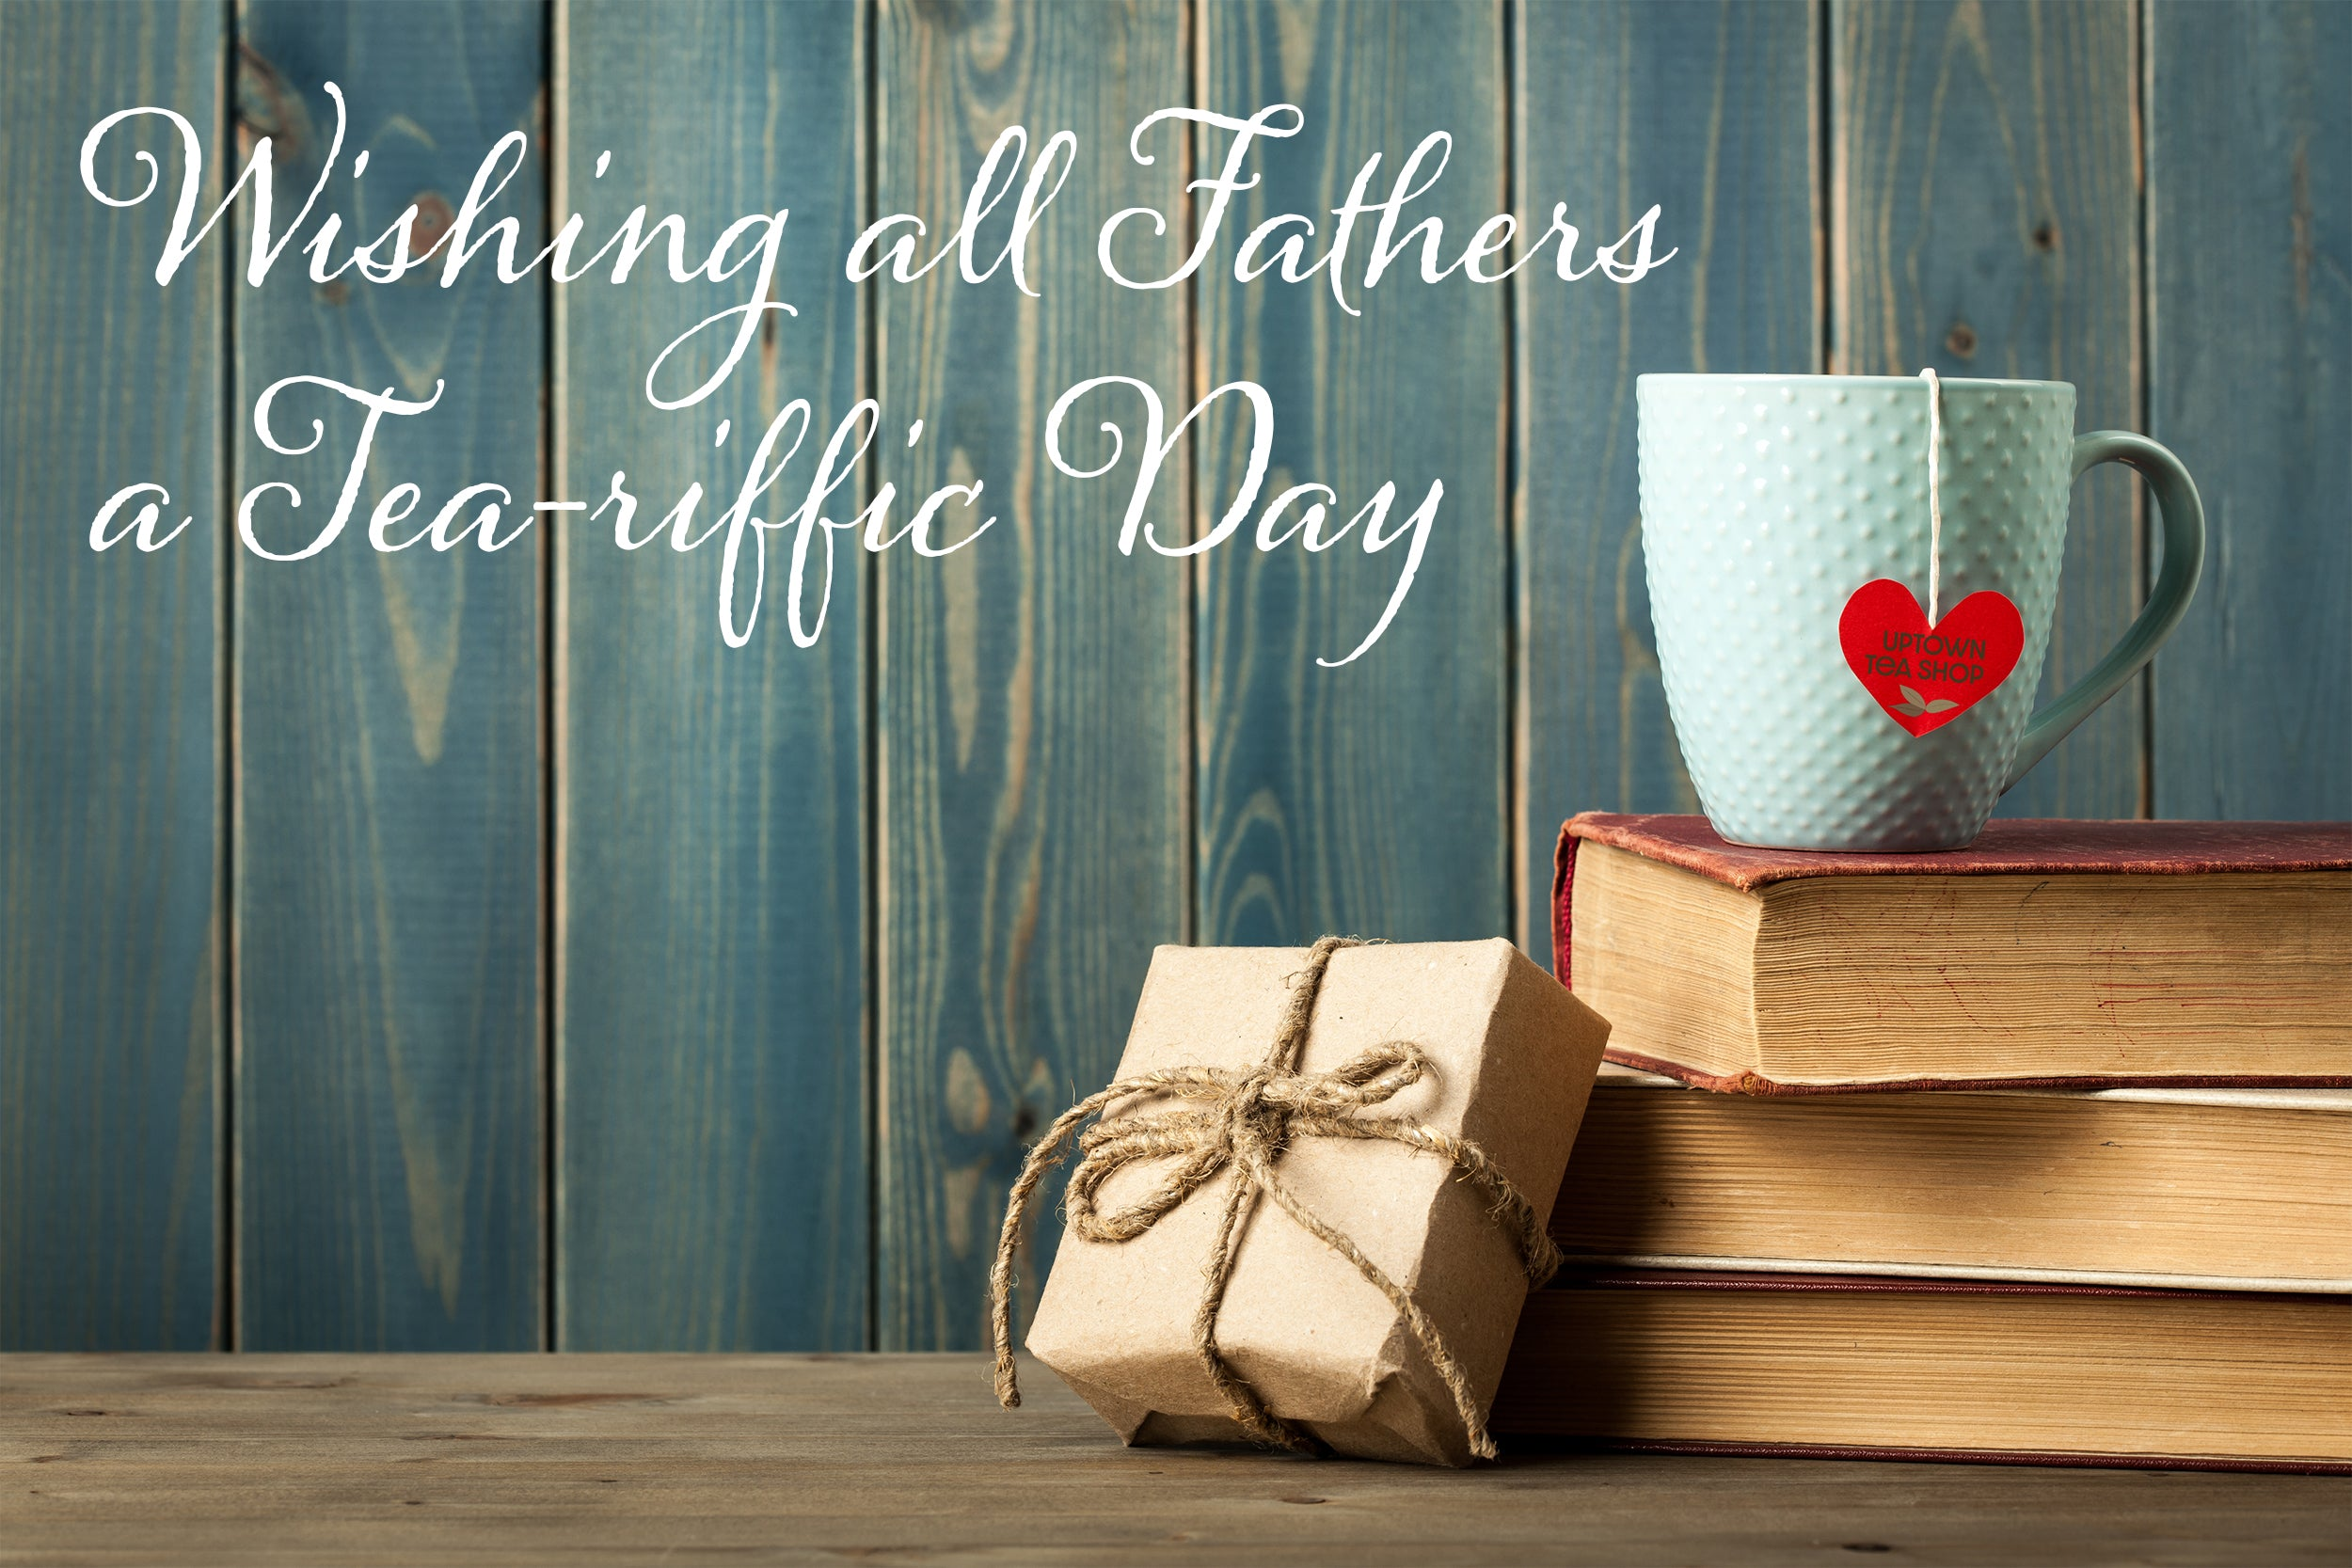 Uptown Tea Shop - Premium Loose Leaf Teas and Accessories - Happy Father's Day